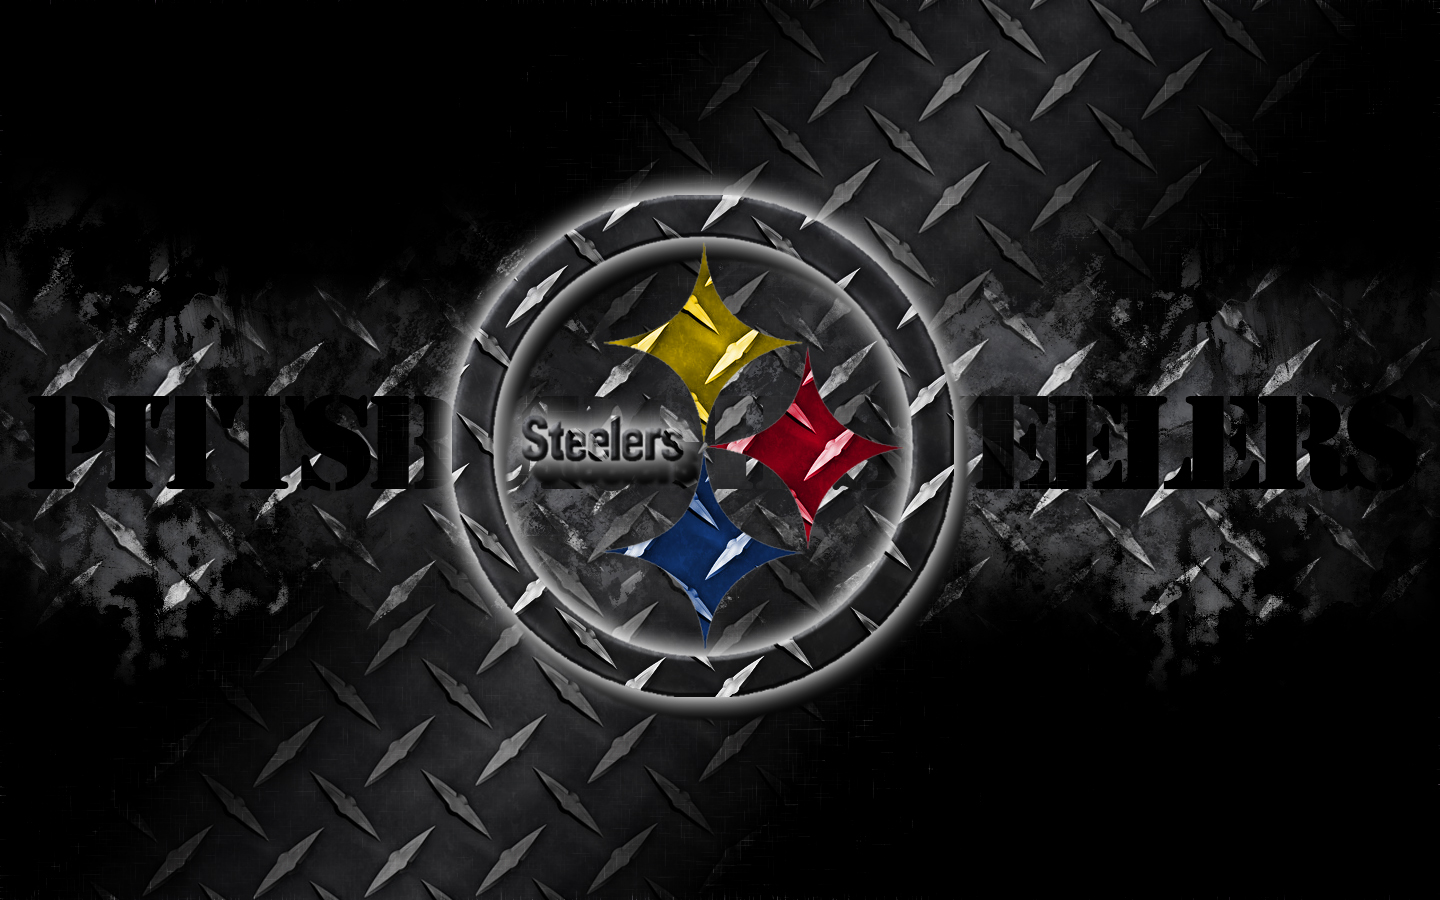 1440x900 - Steelers Desktop 60